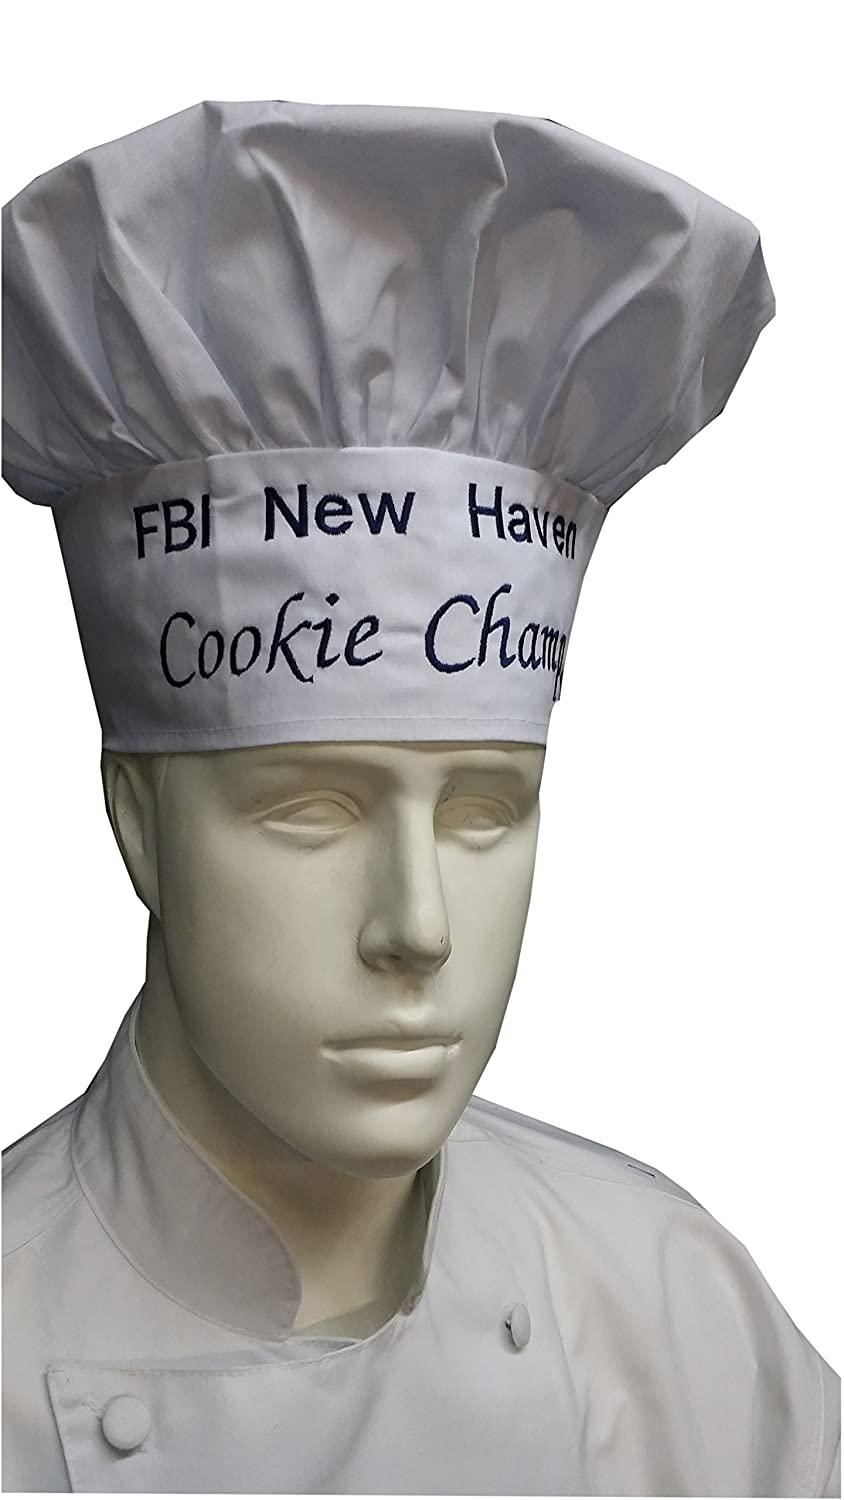 Completely new Amazon.com: Personalized Chef Hat - You Name It Design: Home & Kitchen ZK75